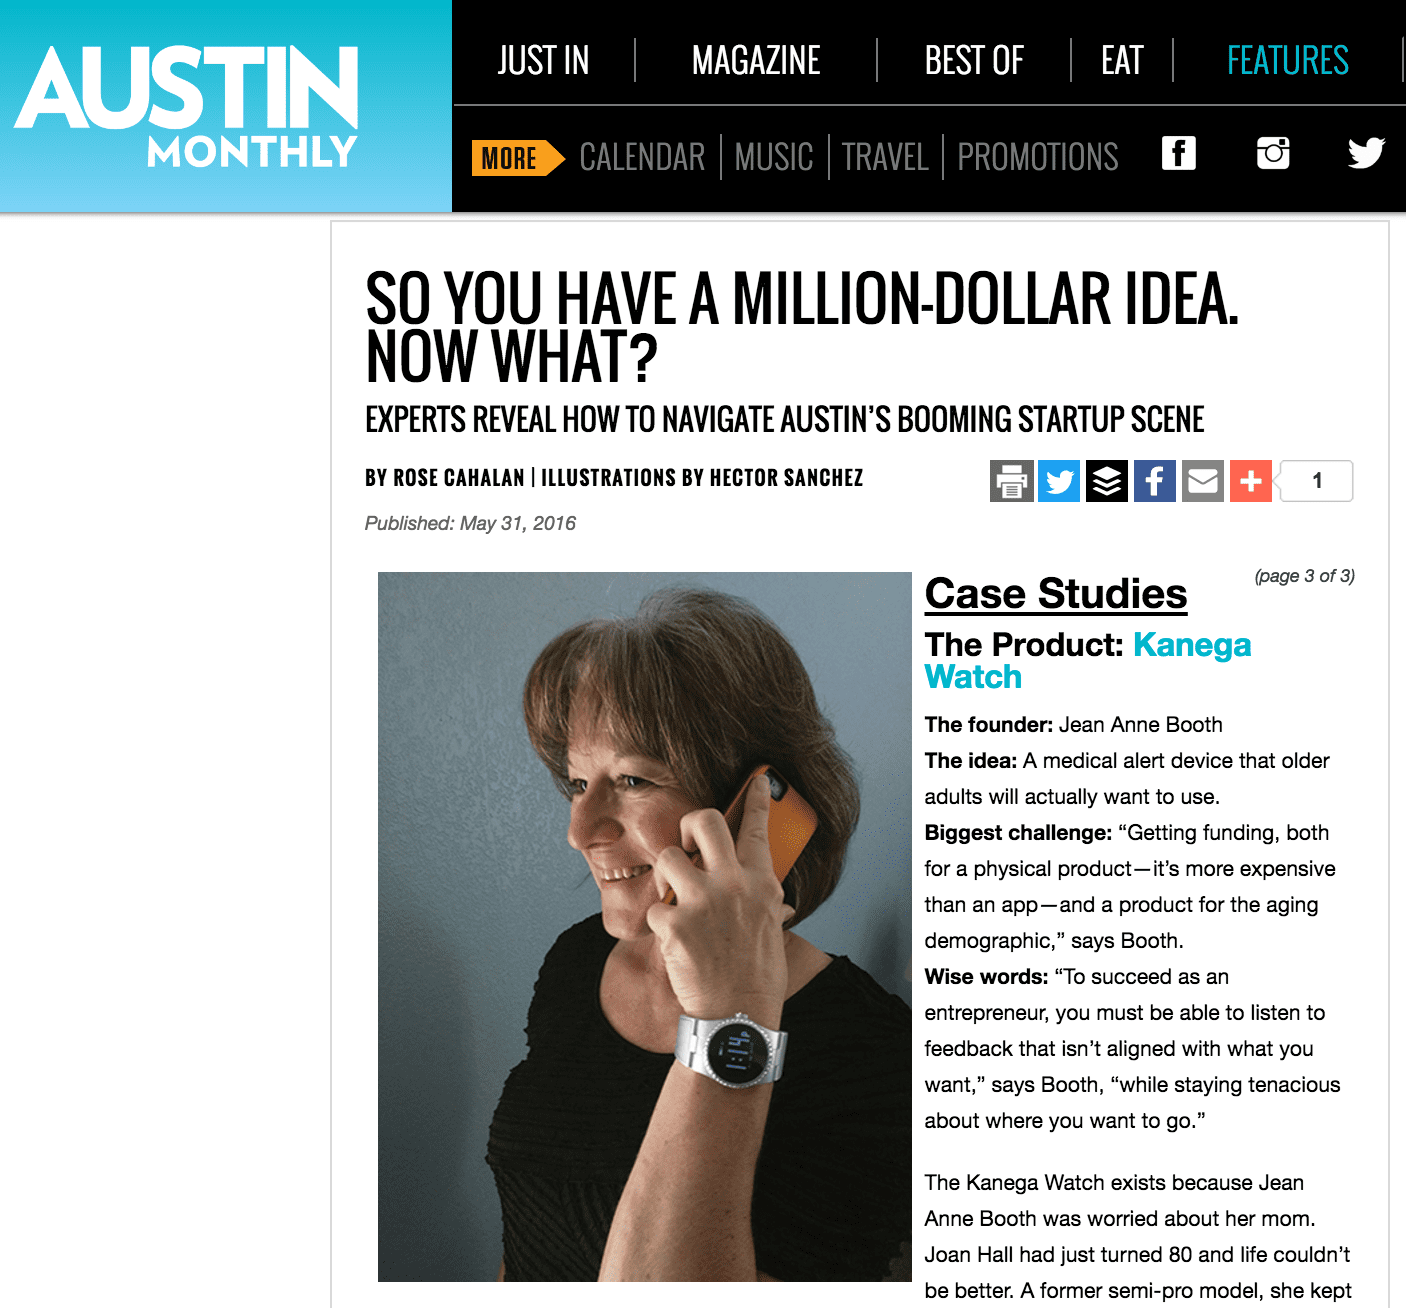 So You Have a Million-Dolla Idea. Now What? Experts Reveal How To Navigate Austin'S Booming Startup Scene